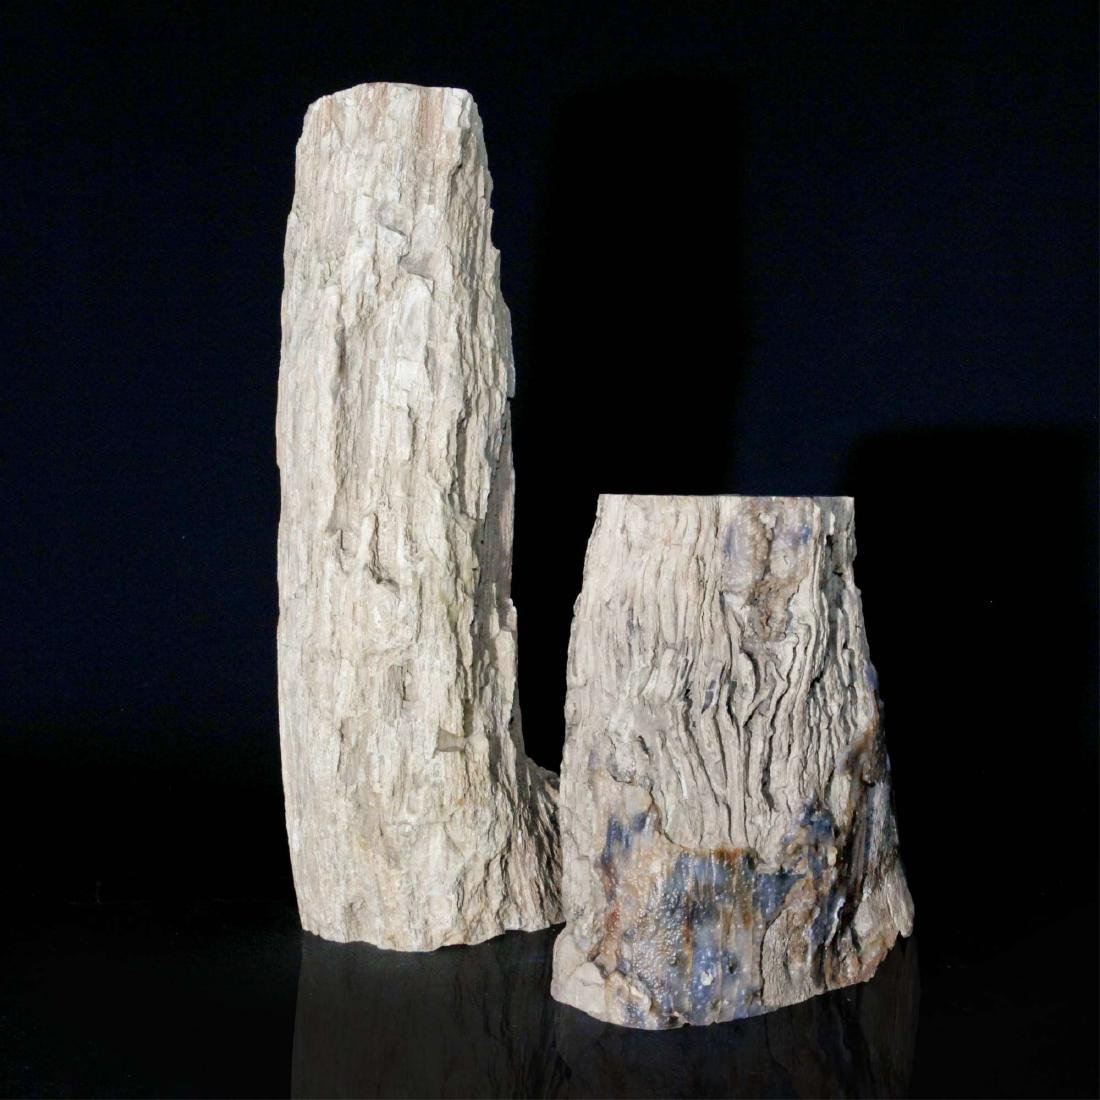 Pair of Petrified Wood Specimens, Oregon USA